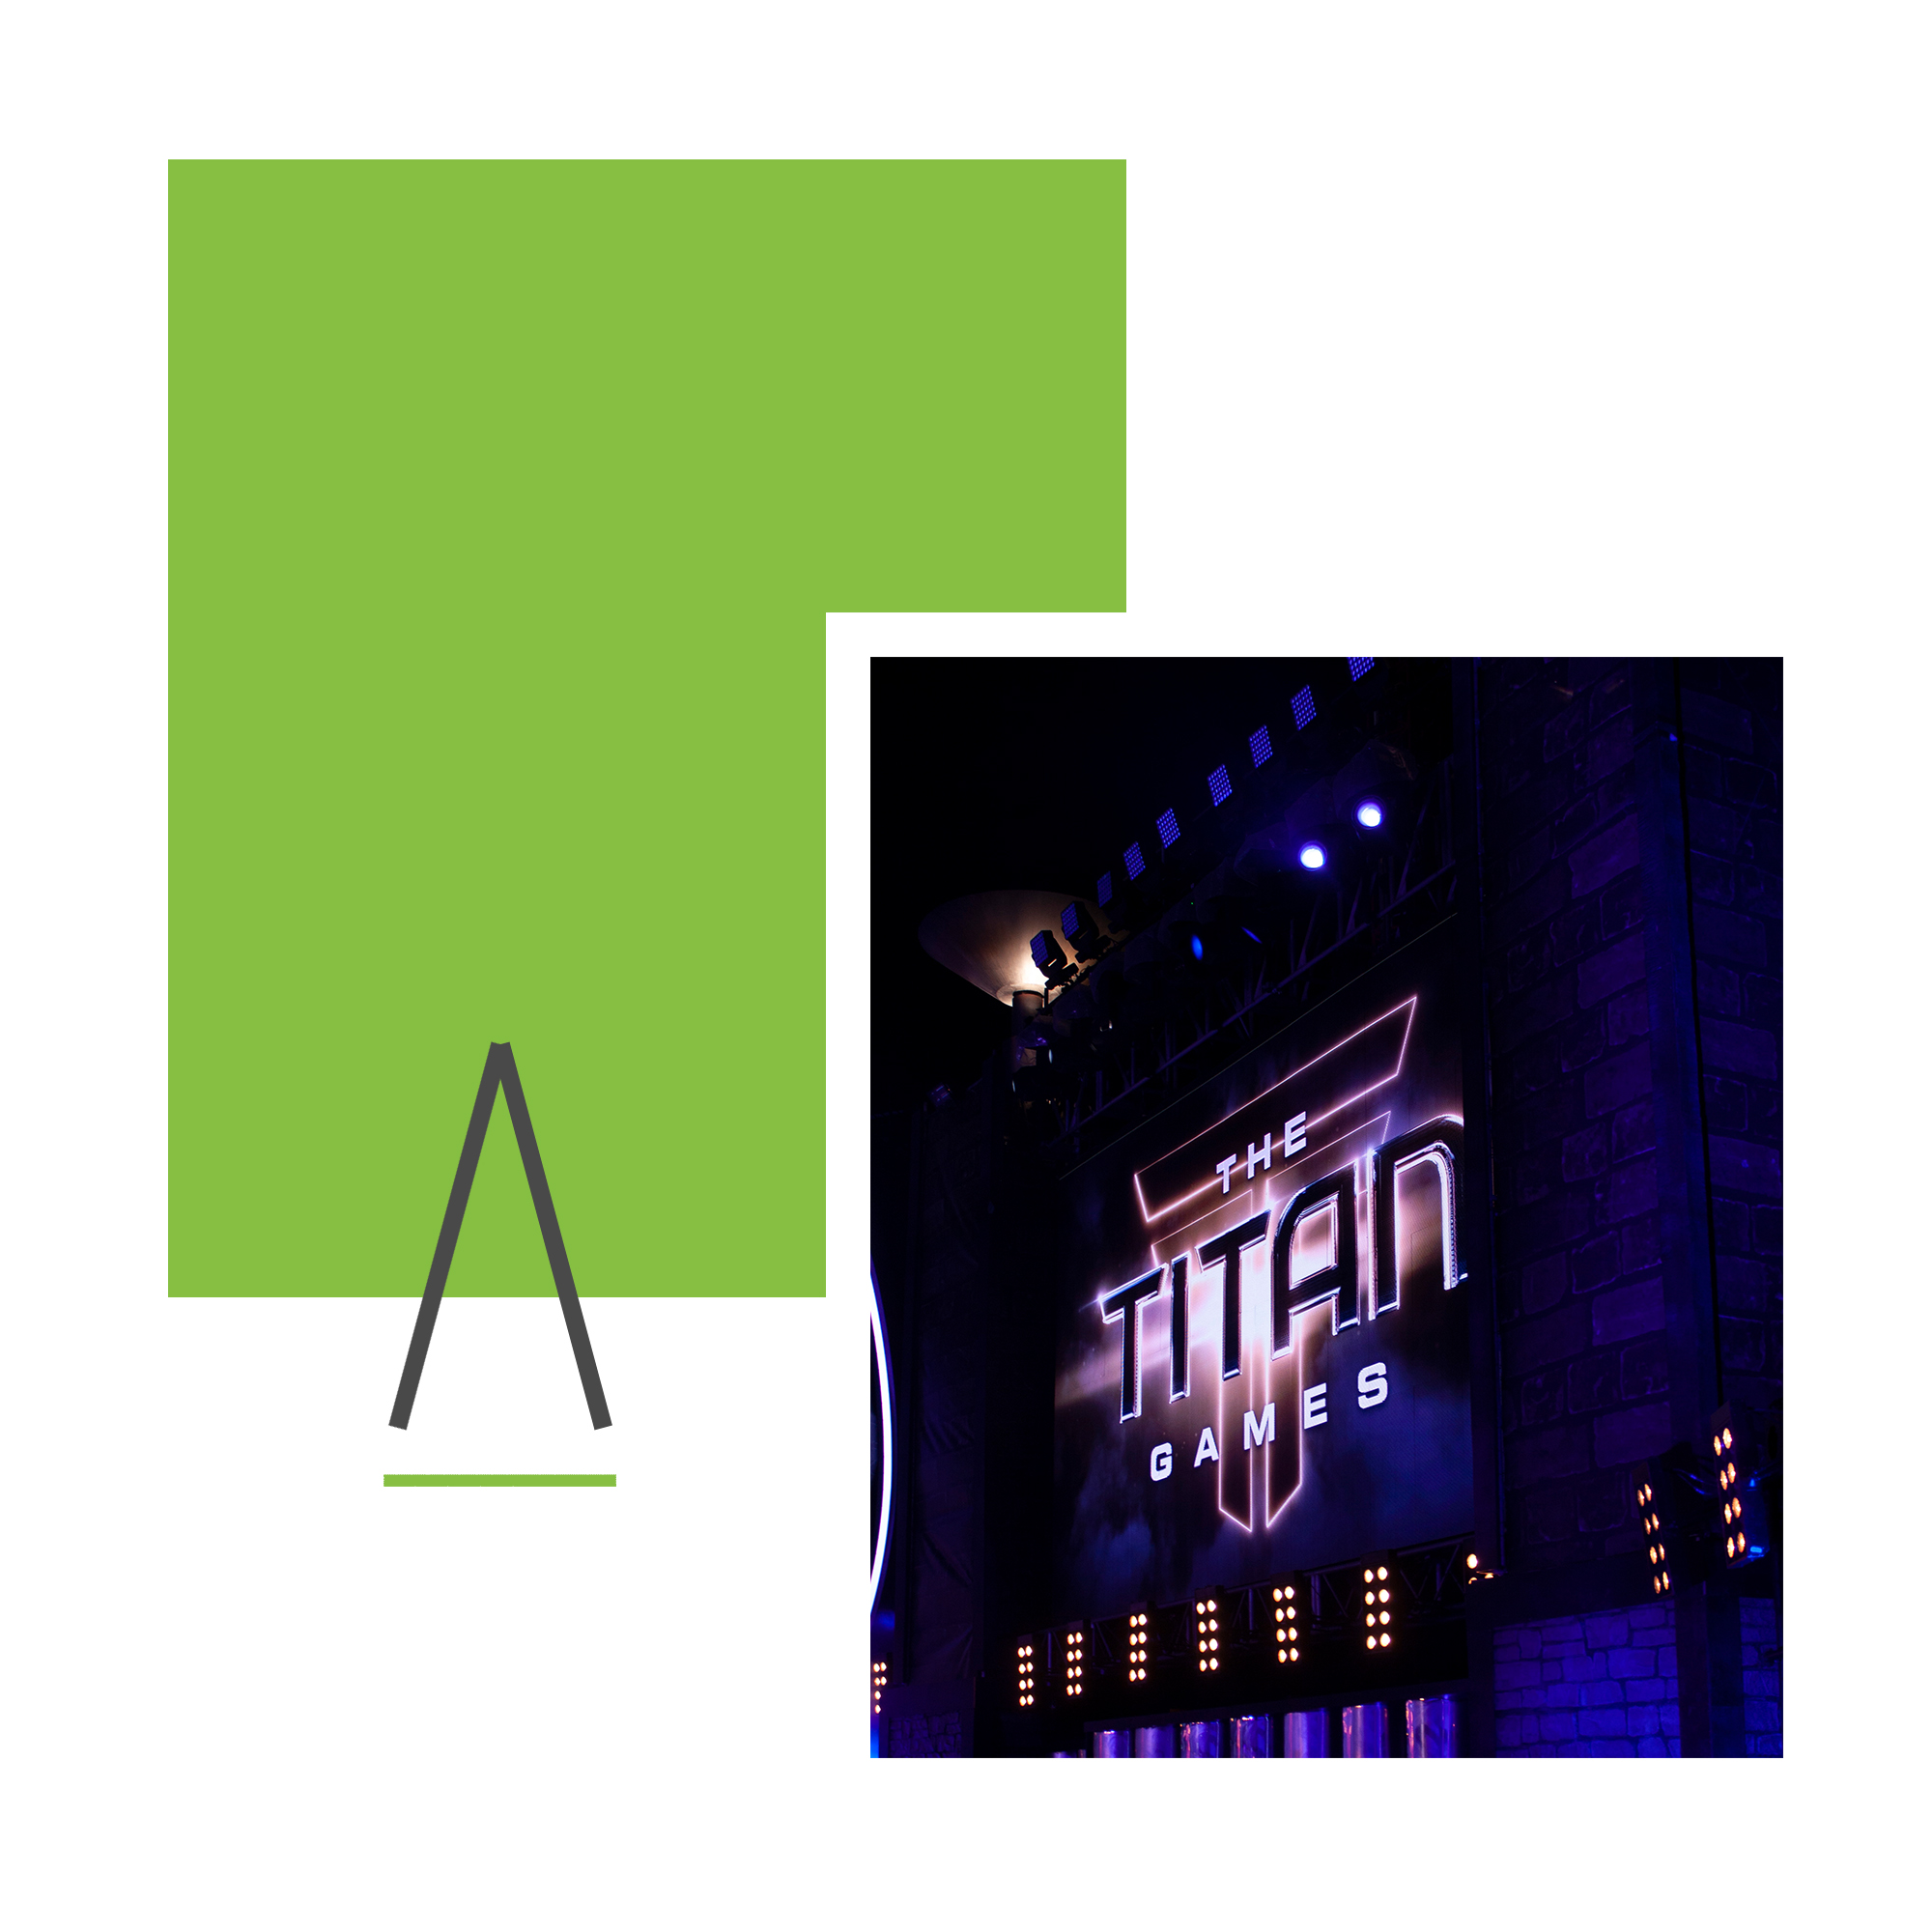 FEATURED WORK - Concepts, design, and implementation of specialized challenges and shows for the entertainment industry.